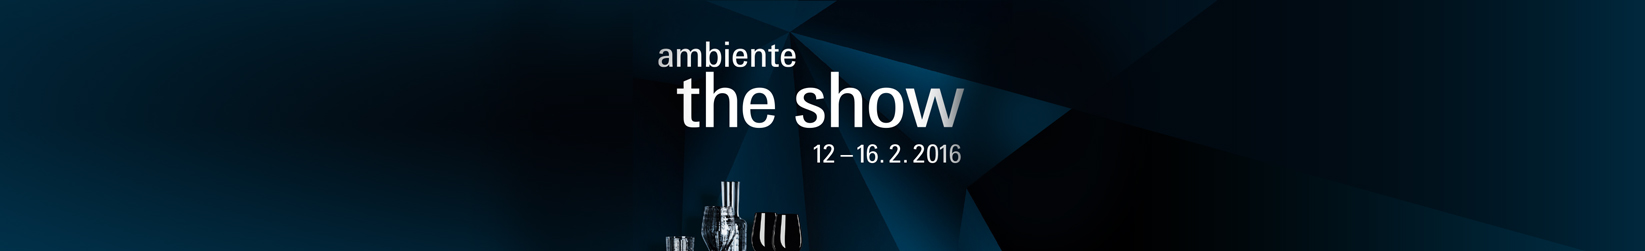 AMBIENTE THE SHOW 2016 | Studio Pastina | Italian Goodies Collection